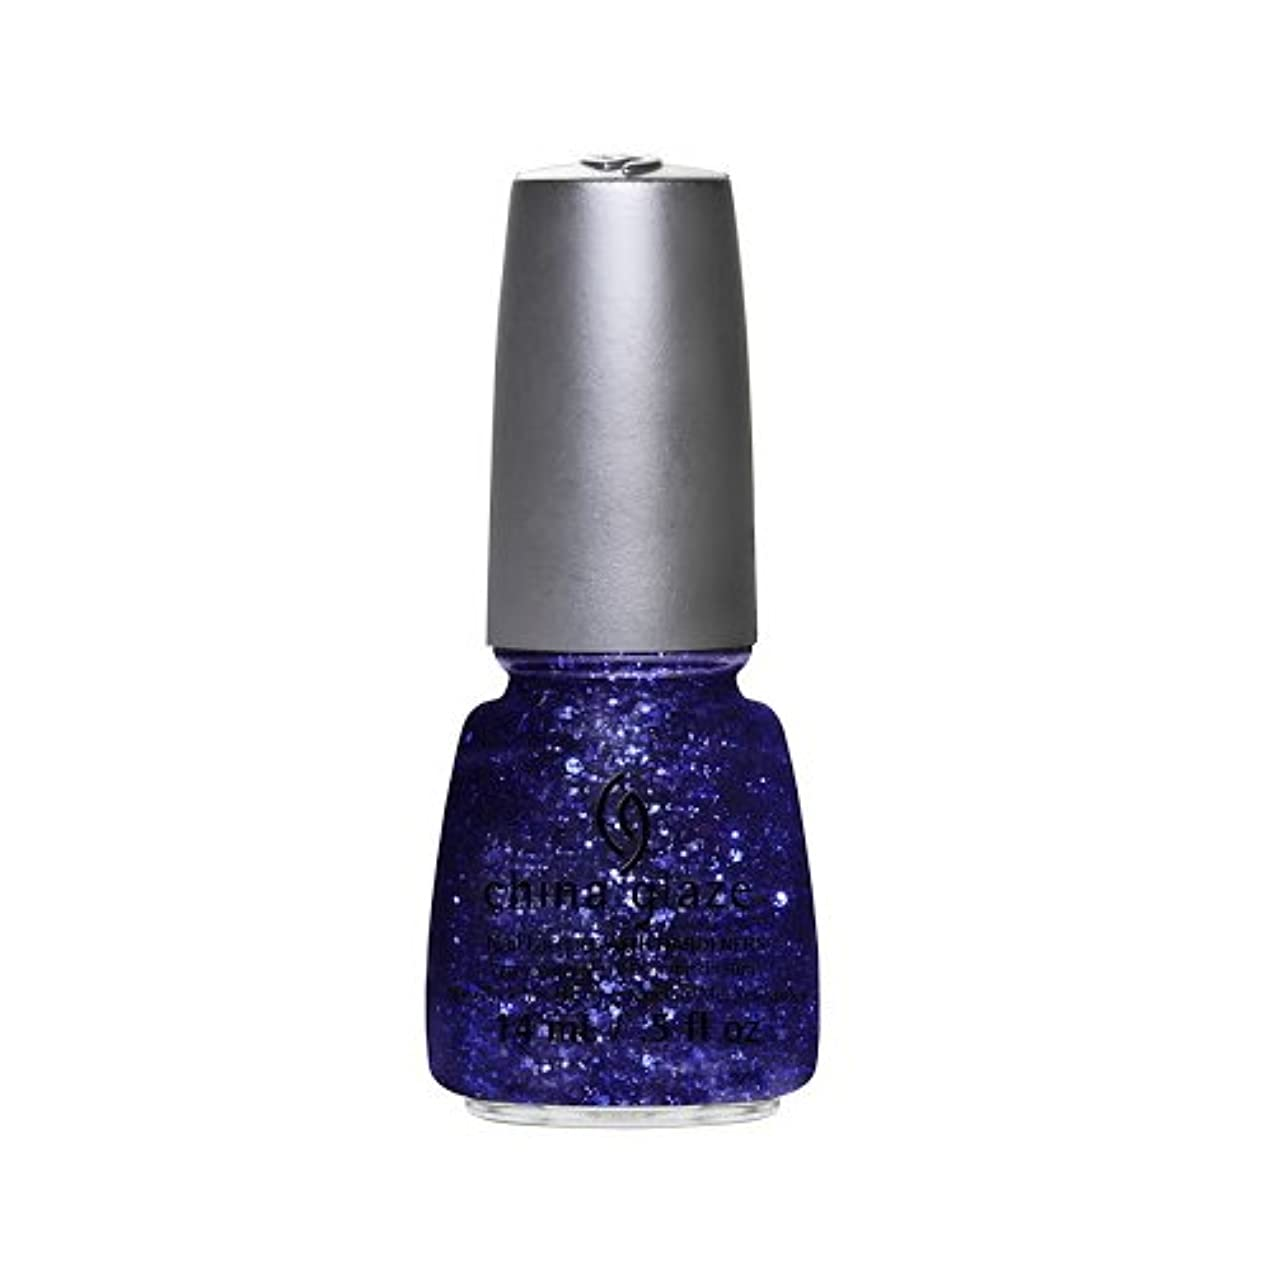 ベルベット測定サーバCHINA GLAZE Nail Lacquer - Glitz Bitz ???n Pieces Collection - Bling It On (並行輸入品)